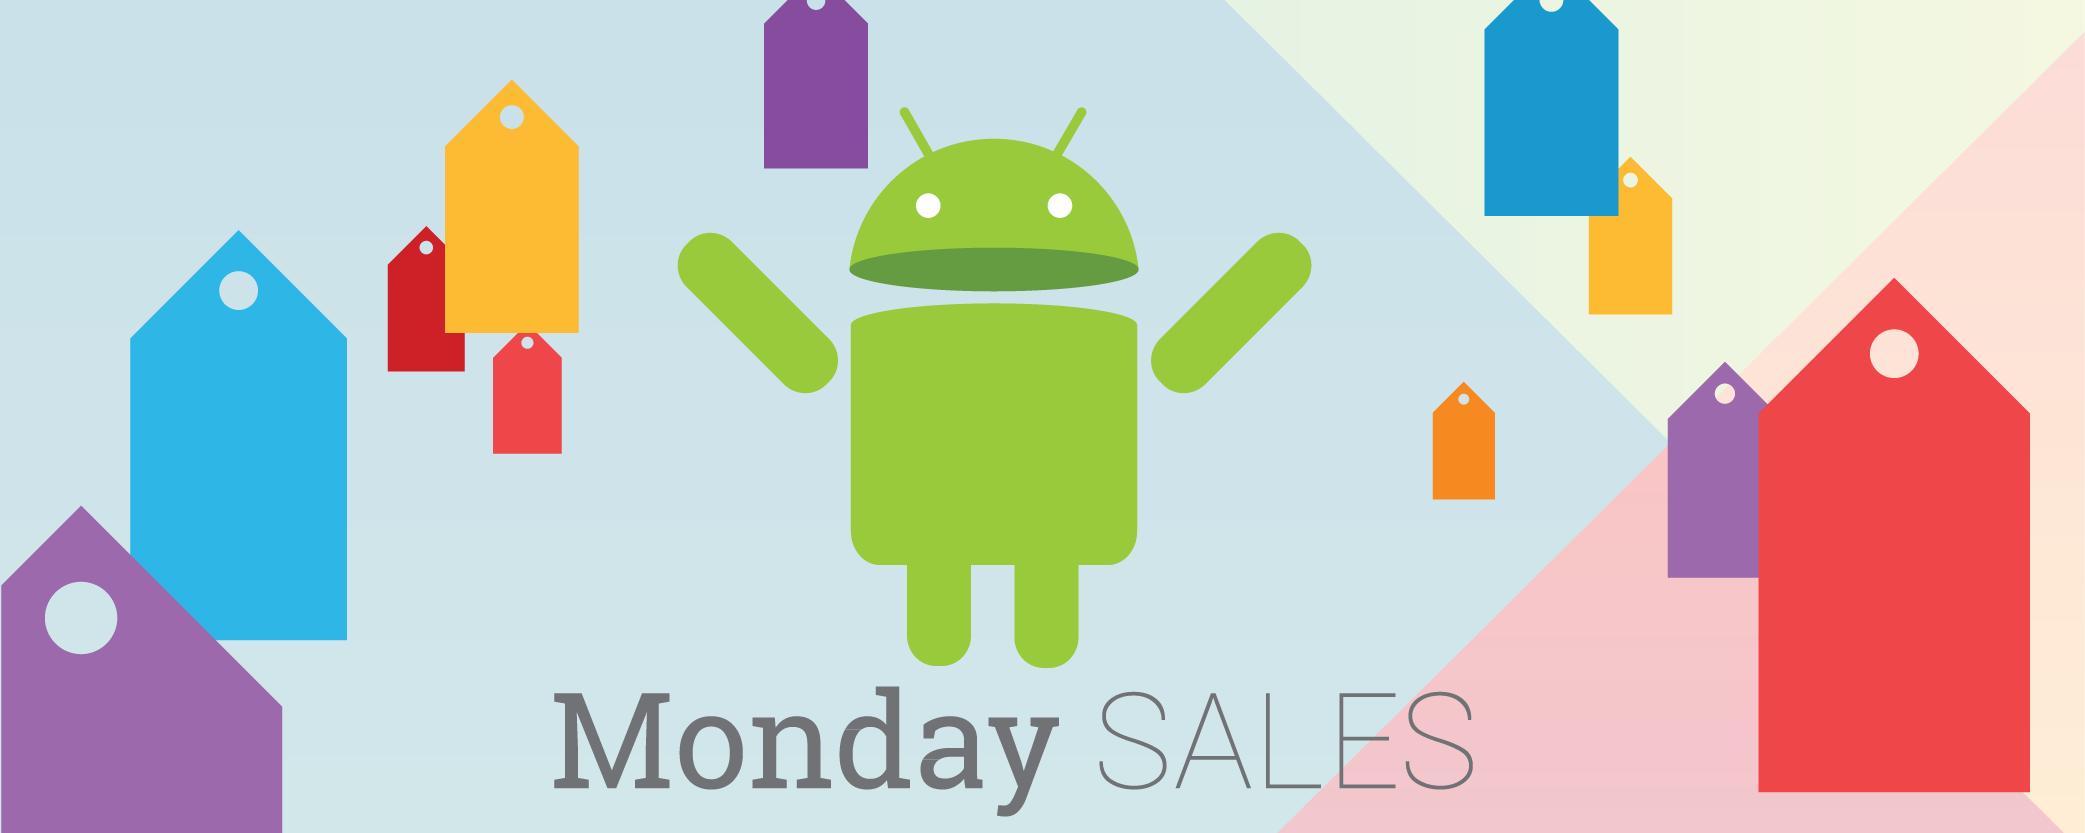 46 temporarily free and 60 on-sale apps and games for Monday